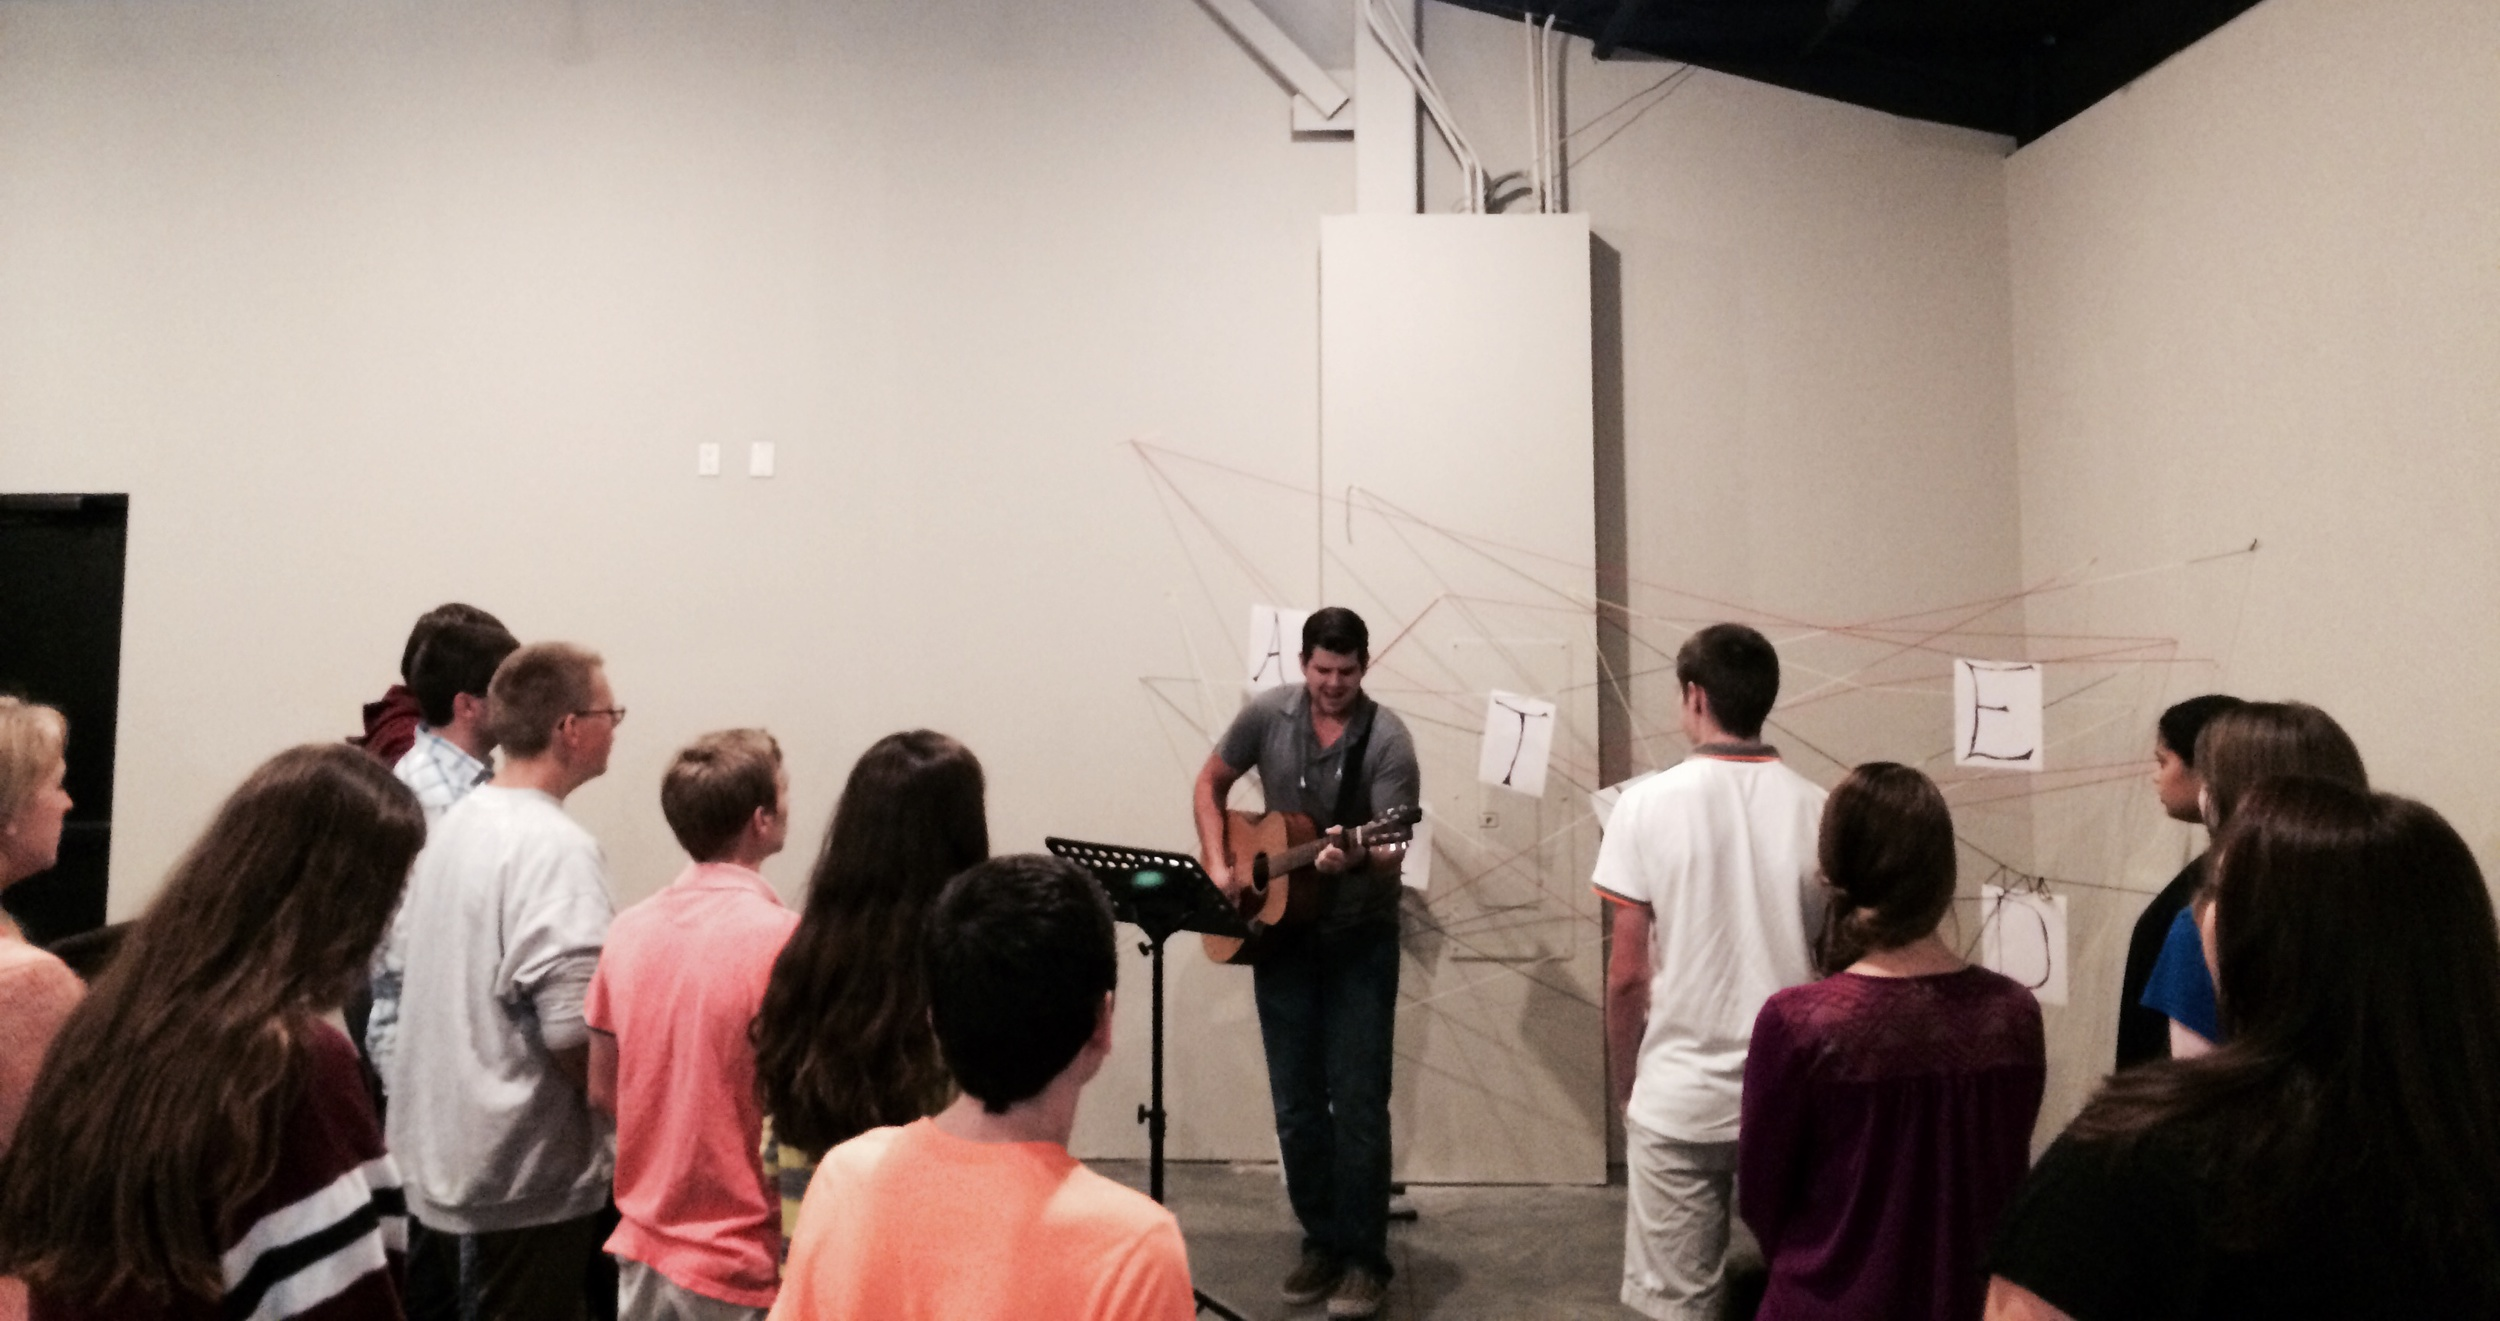 Having a great time kicking off our new Sunday morning gathering!